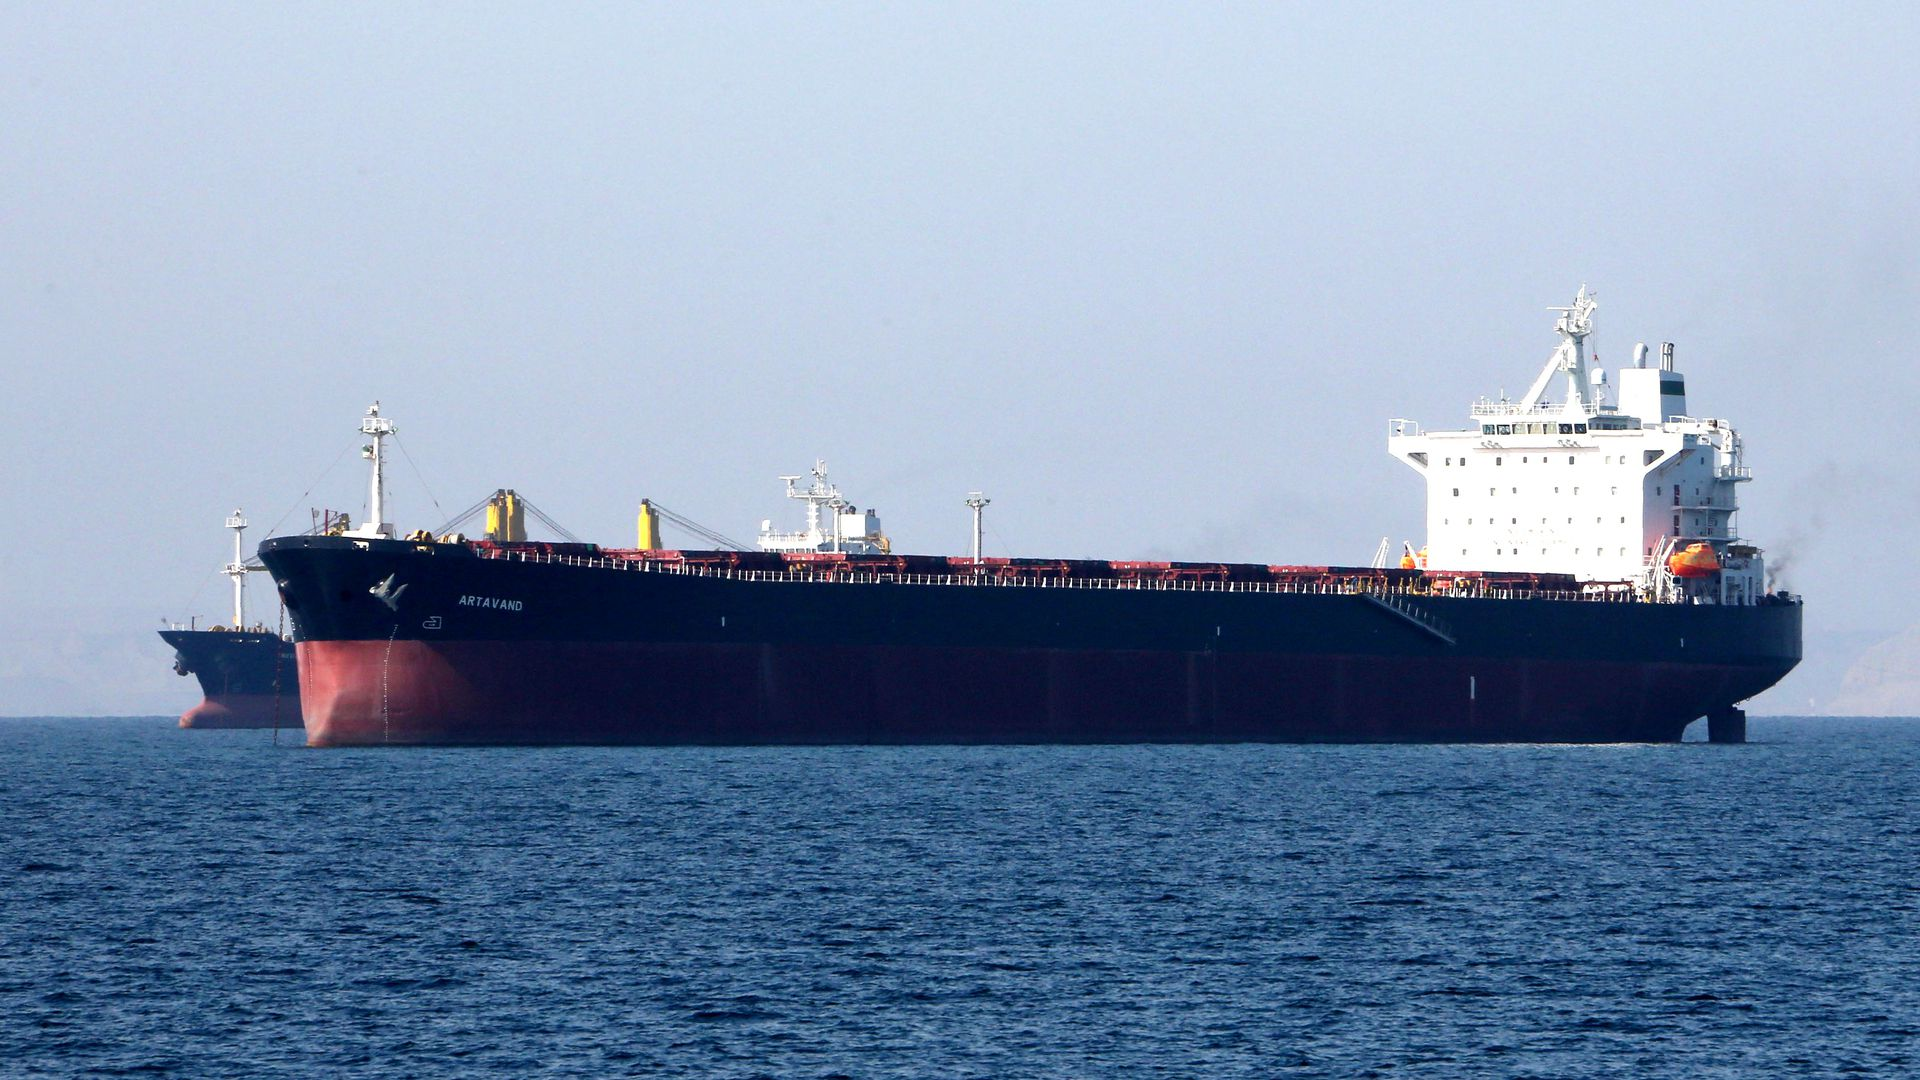 Photo of an oil tanker off the coast of Iran